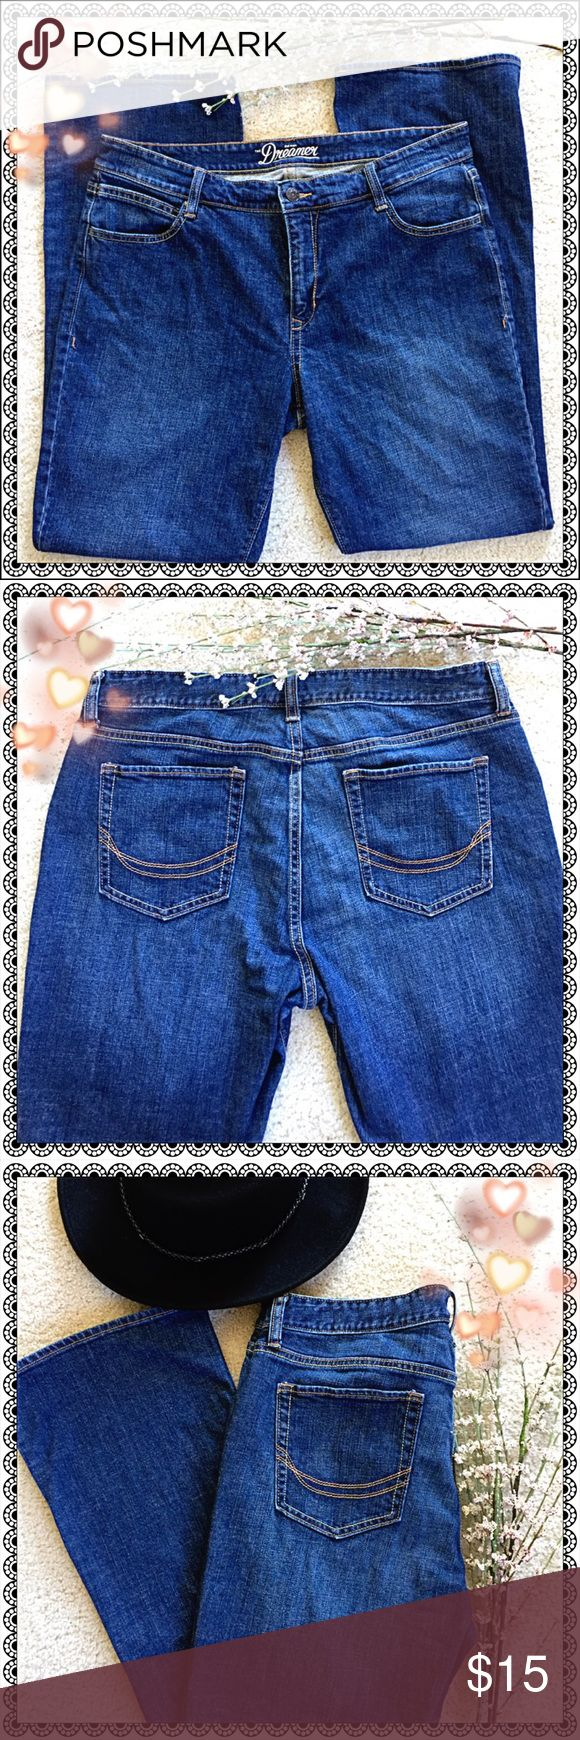 LIKE 🆕 DREAMER 😴 Old Navy⚓️ Jeans 👖 DREAMER 😴 Jeans 👖 in Fabulous LIKE NEW Condition! 😍 Old Navy Jeans